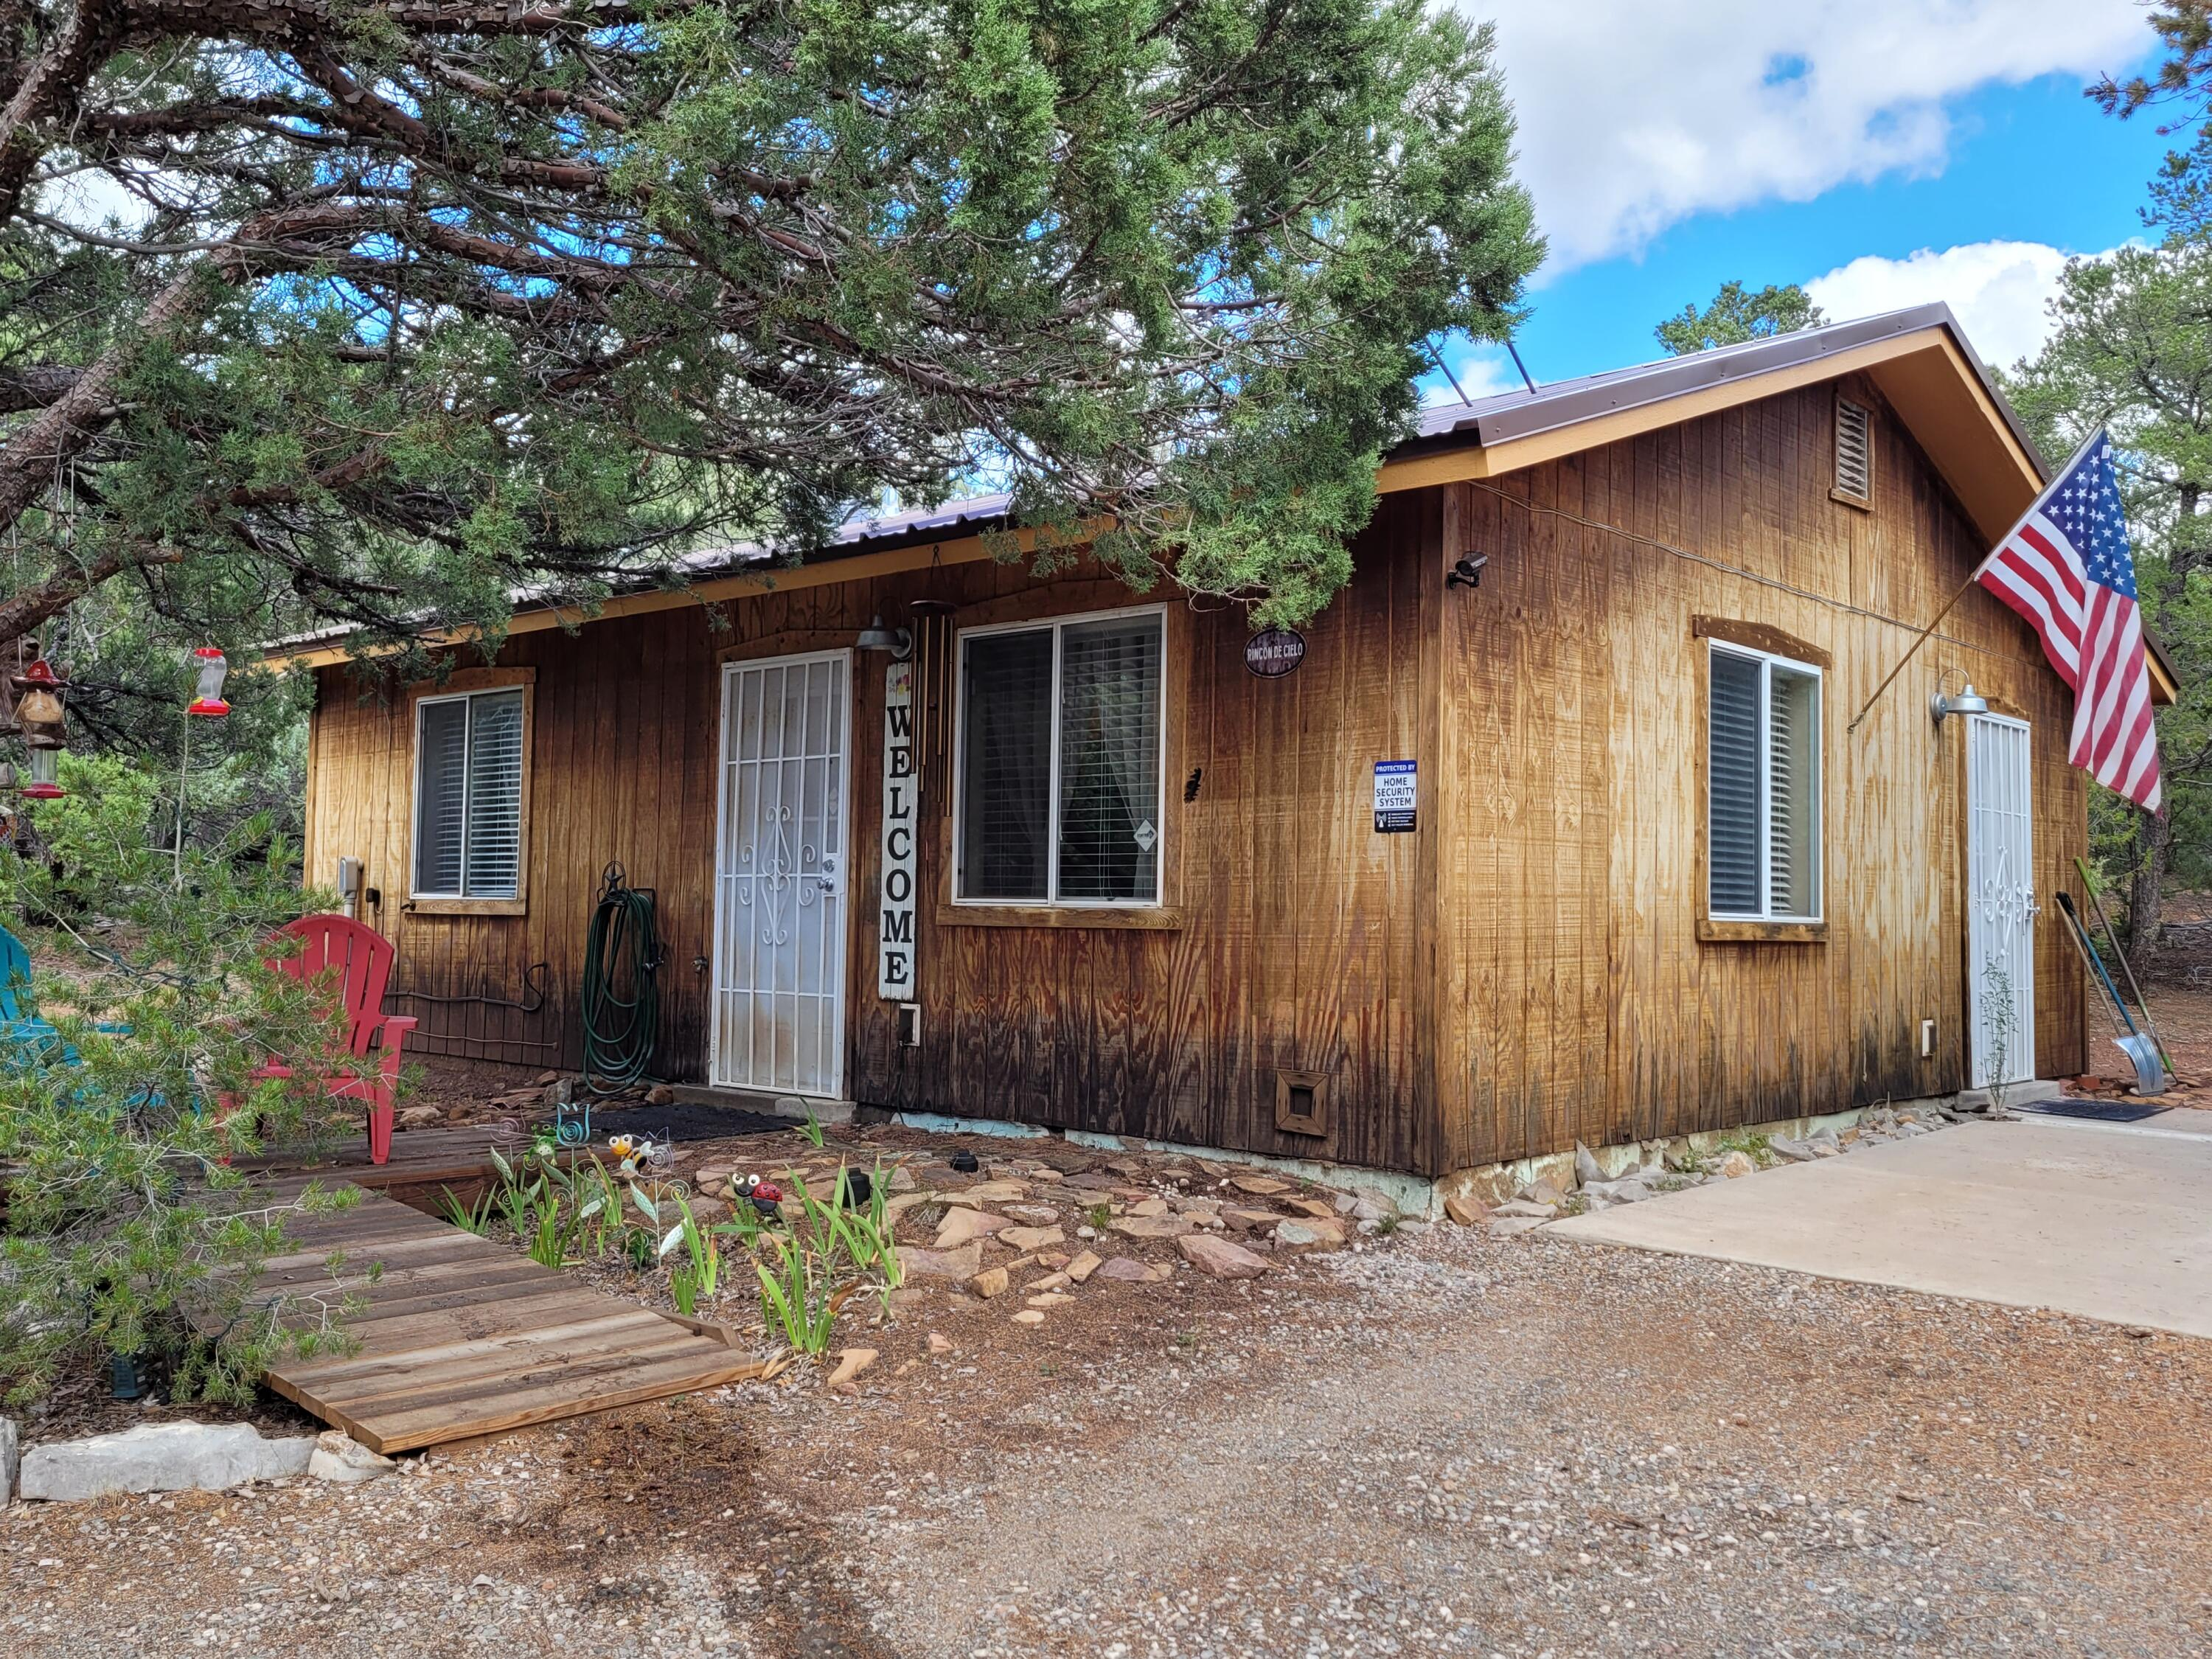 MOVE-IN READY! Adorable mountain cabin getaway in a peaceful serene forested location. Escape to the peace of your own little cabin in the forest at 7,200 feet in elevation. Located at the end of cul-de sac.  Very little traffic.  2 bedrooms, 1 bath, a good sized kitchen and living room. Great for an Air B&B. Will sell furnished/move-in ready with acceptable offer.  120 SF shed provides ample storage. Appliances included - refrigerator, range and washer. Additional possible inclusions, woodchipper, grill, 1 cord of firewood and much more!  Metal roof. 2nd bedroom/office has beautiful built in wood bookshelves and desk. New carpet.  Roads are maintained by Bernalillo county.  Don't miss out on this cabin in the woods!